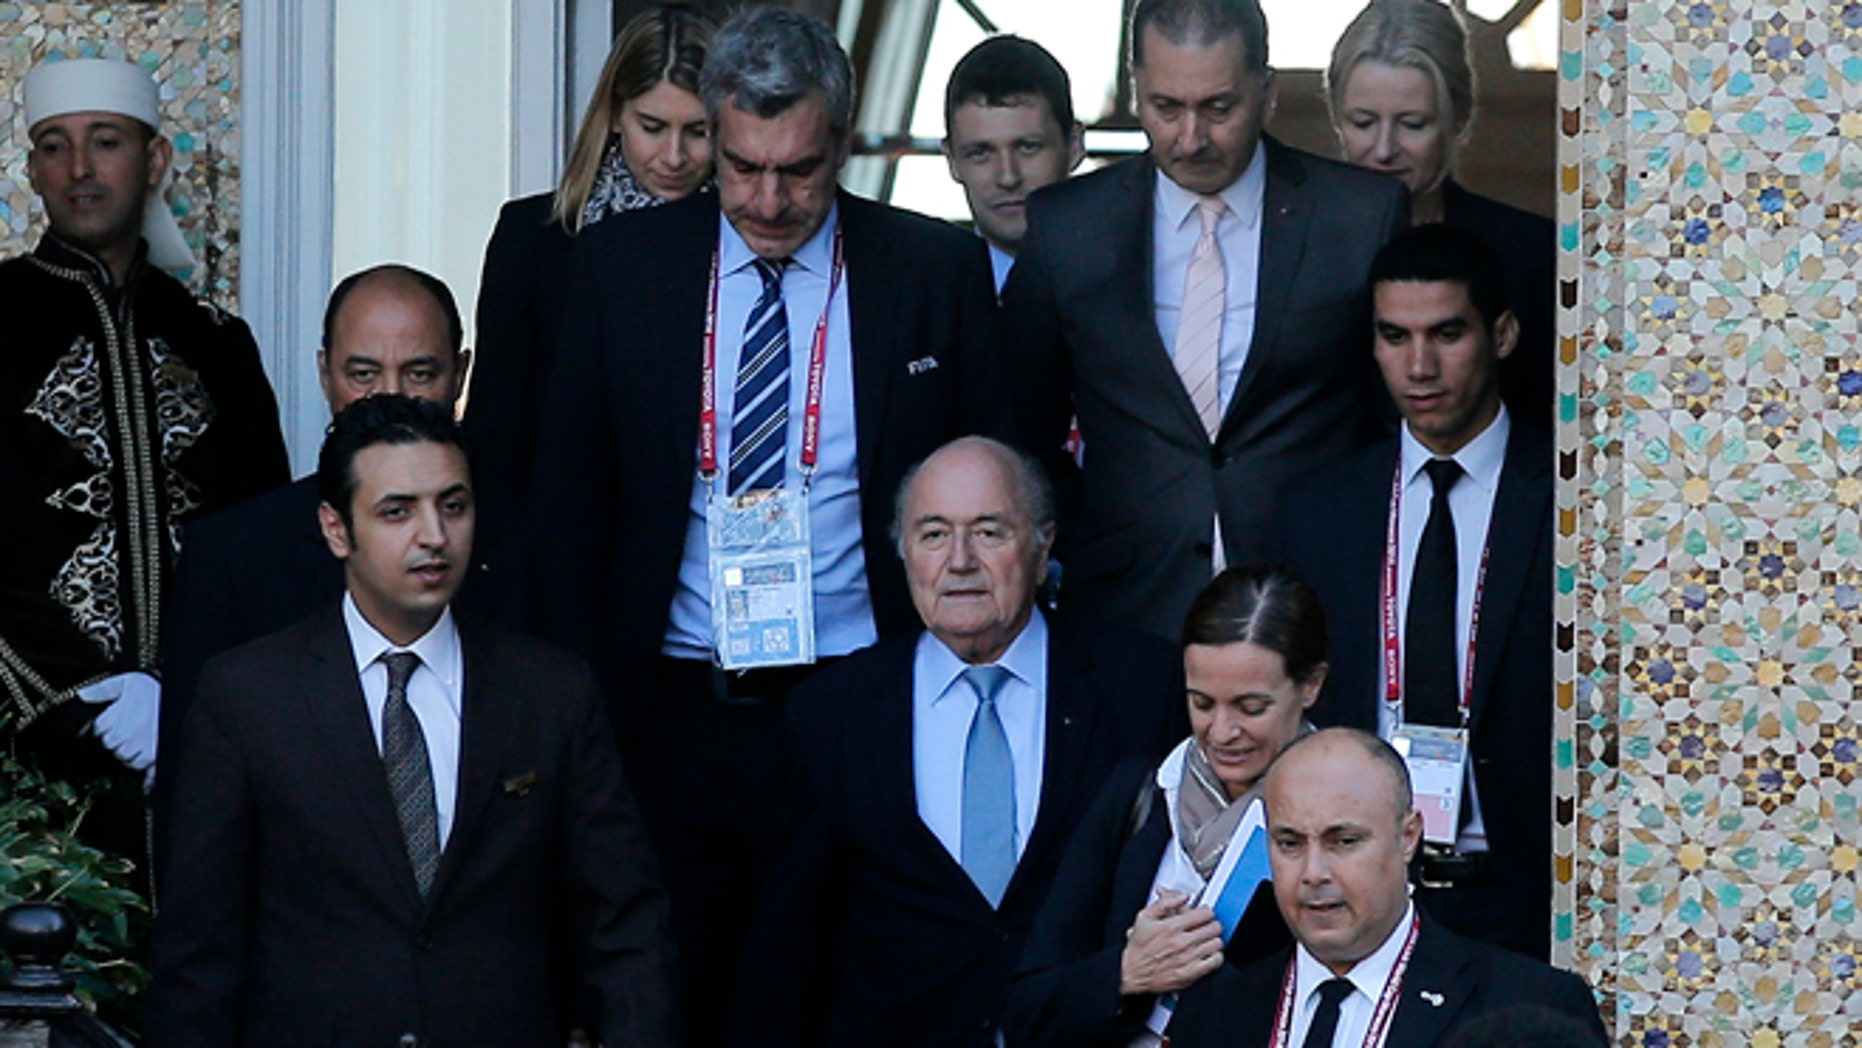 FIFA president Sepp Blatter, center, leaves a hotel to lead a meeting in Marrakech, Morocco, Thursday, Dec. 18, 2014. Amid another crisis at FIFA, Blatter will lead an executive committee meeting on Thursday with the sudden resignation of ethics prosecutor Michael Garcia now on the agenda. (AP Photo/Christophe Ena)